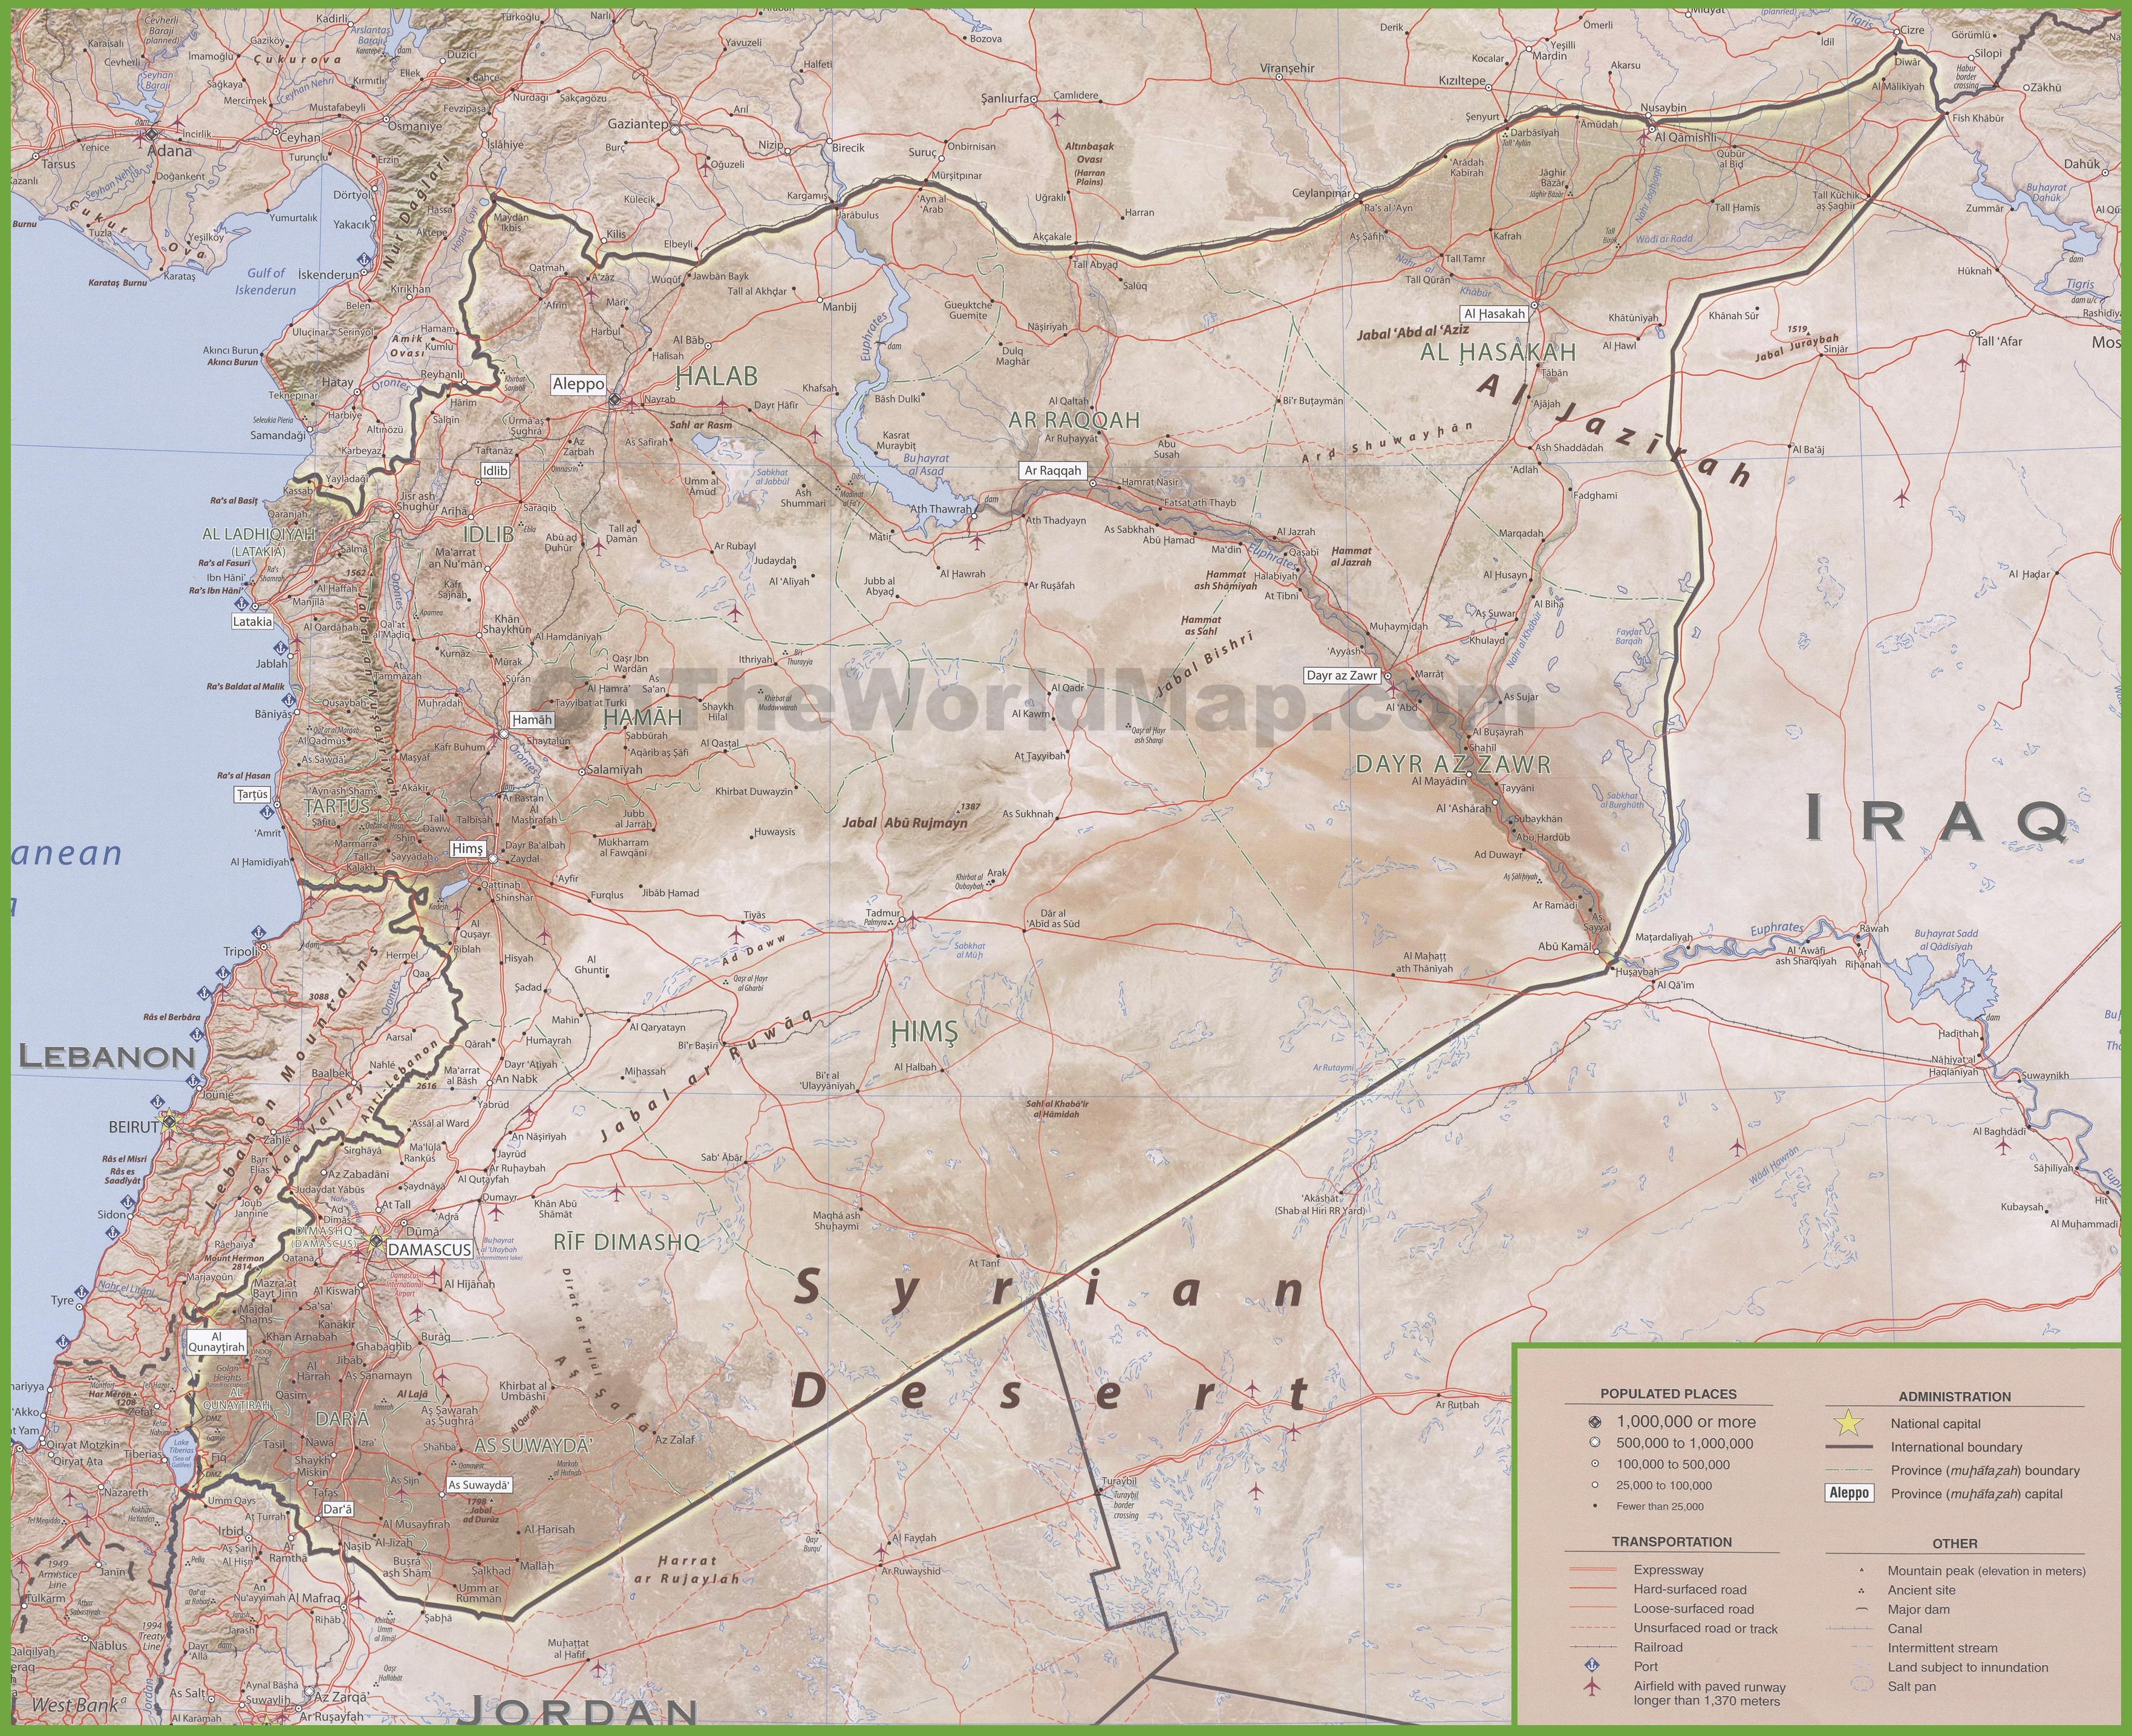 Large Detailed Map Of Syria With Cities And Towns - Map of alabama with cities and towns